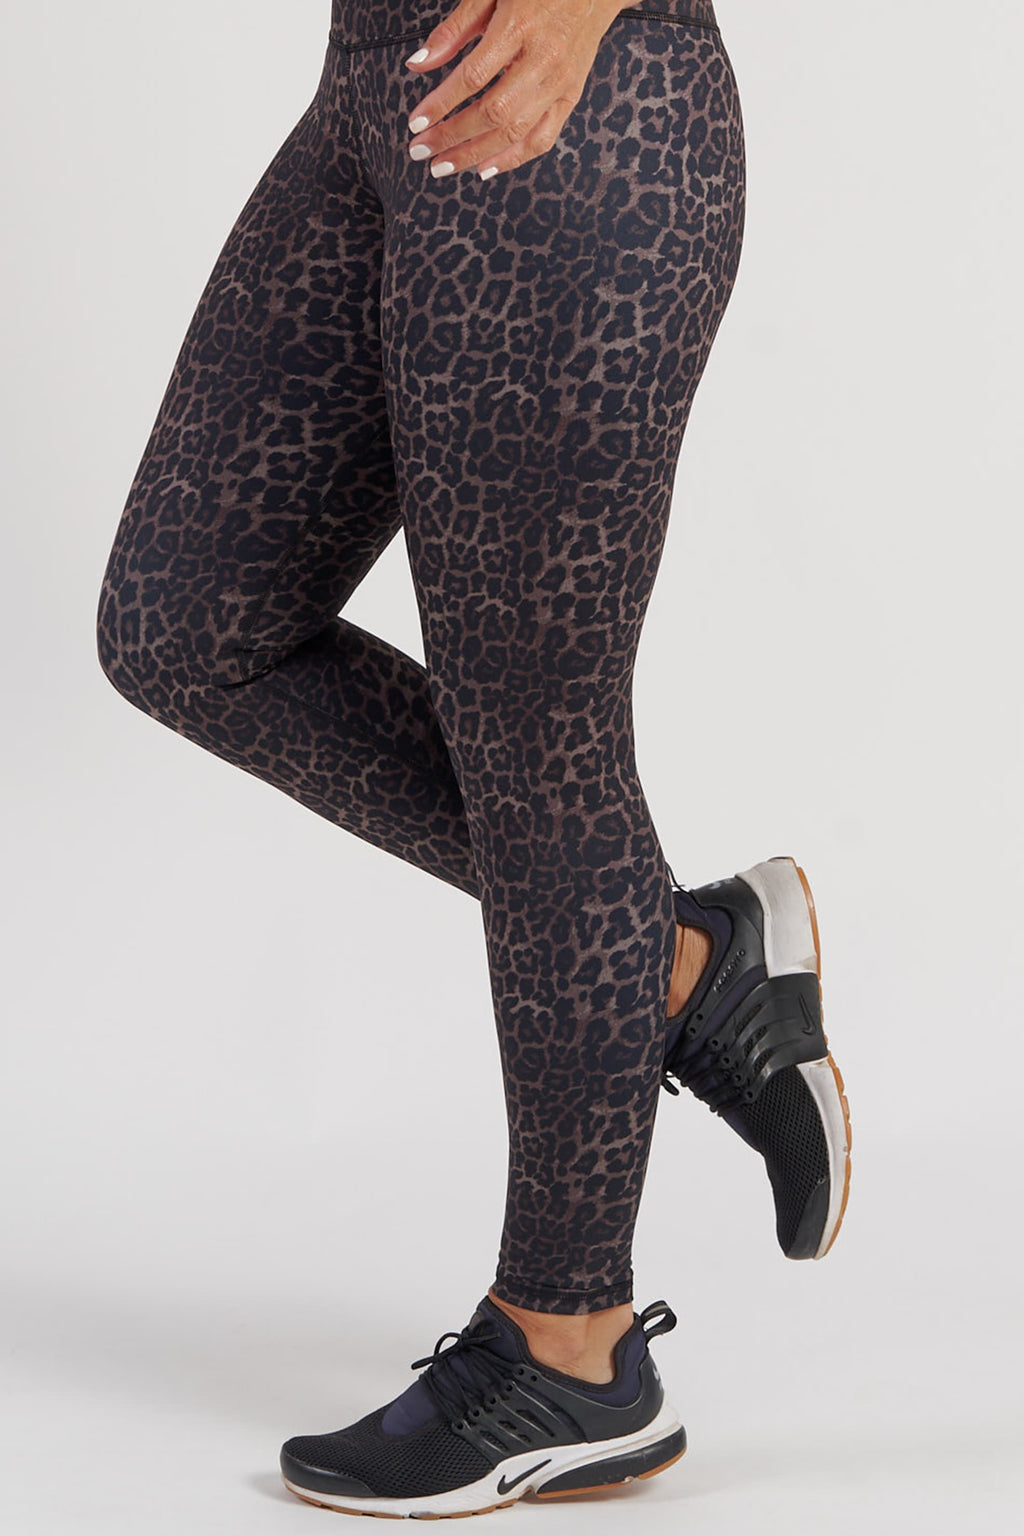 Essential Full Length Tight - Bronze Leopard from Active Truth USA